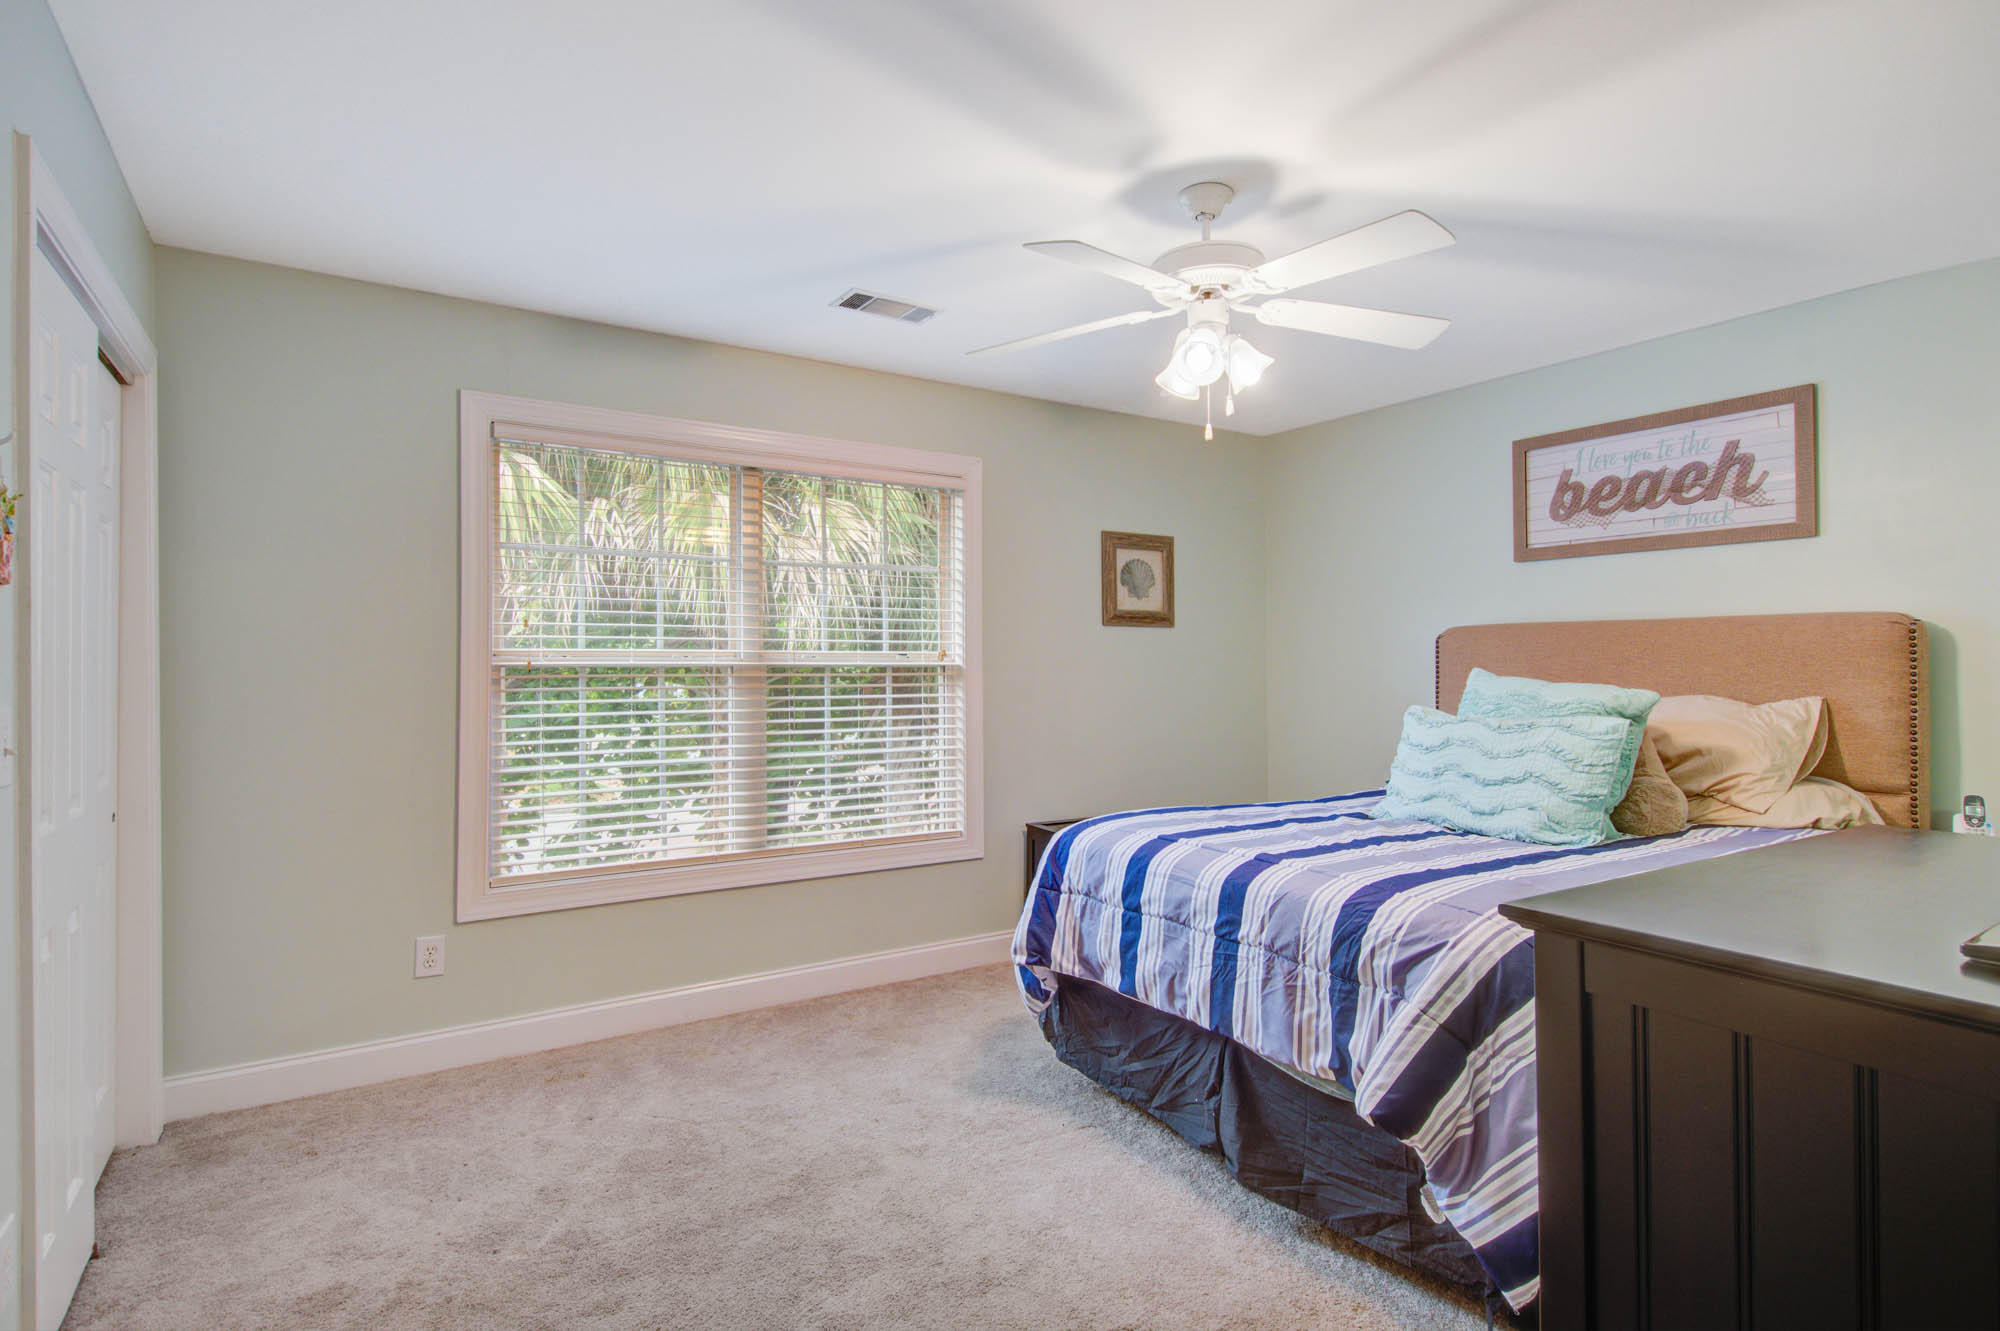 Radcliffe Place Homes For Sale - 4002 Radcliffe, Charleston, SC - 15